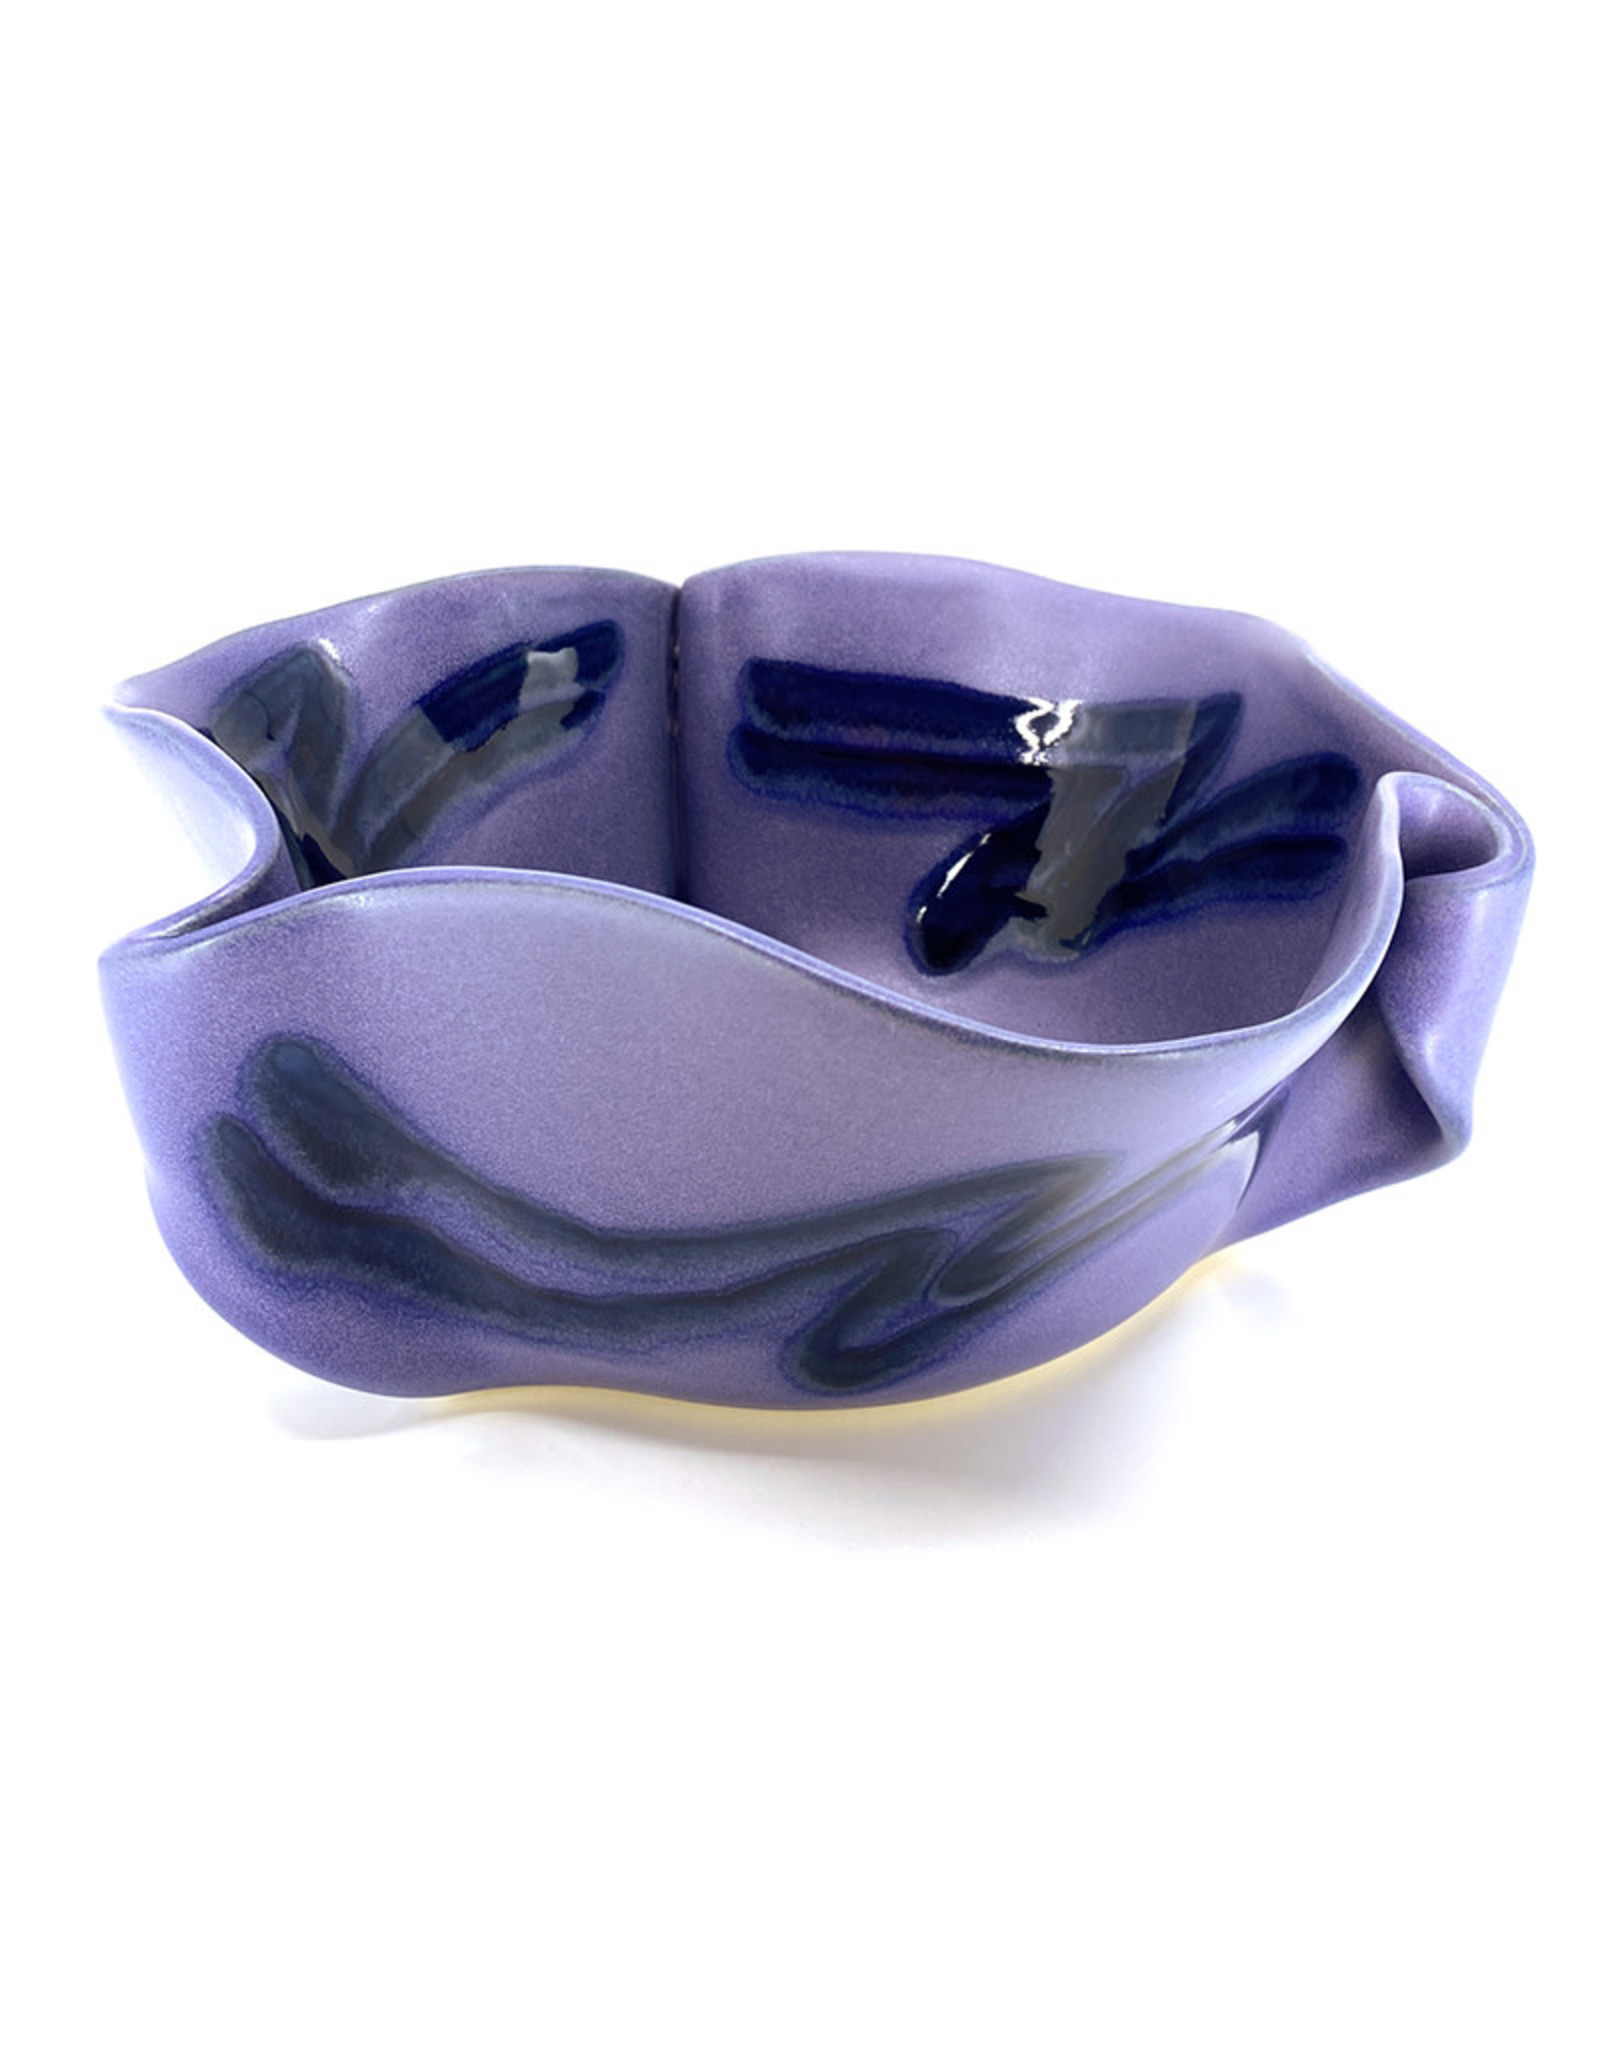 HILBORN POTTERY LARGE PERIWINKLE CURLY BOWL WITH SERVERS